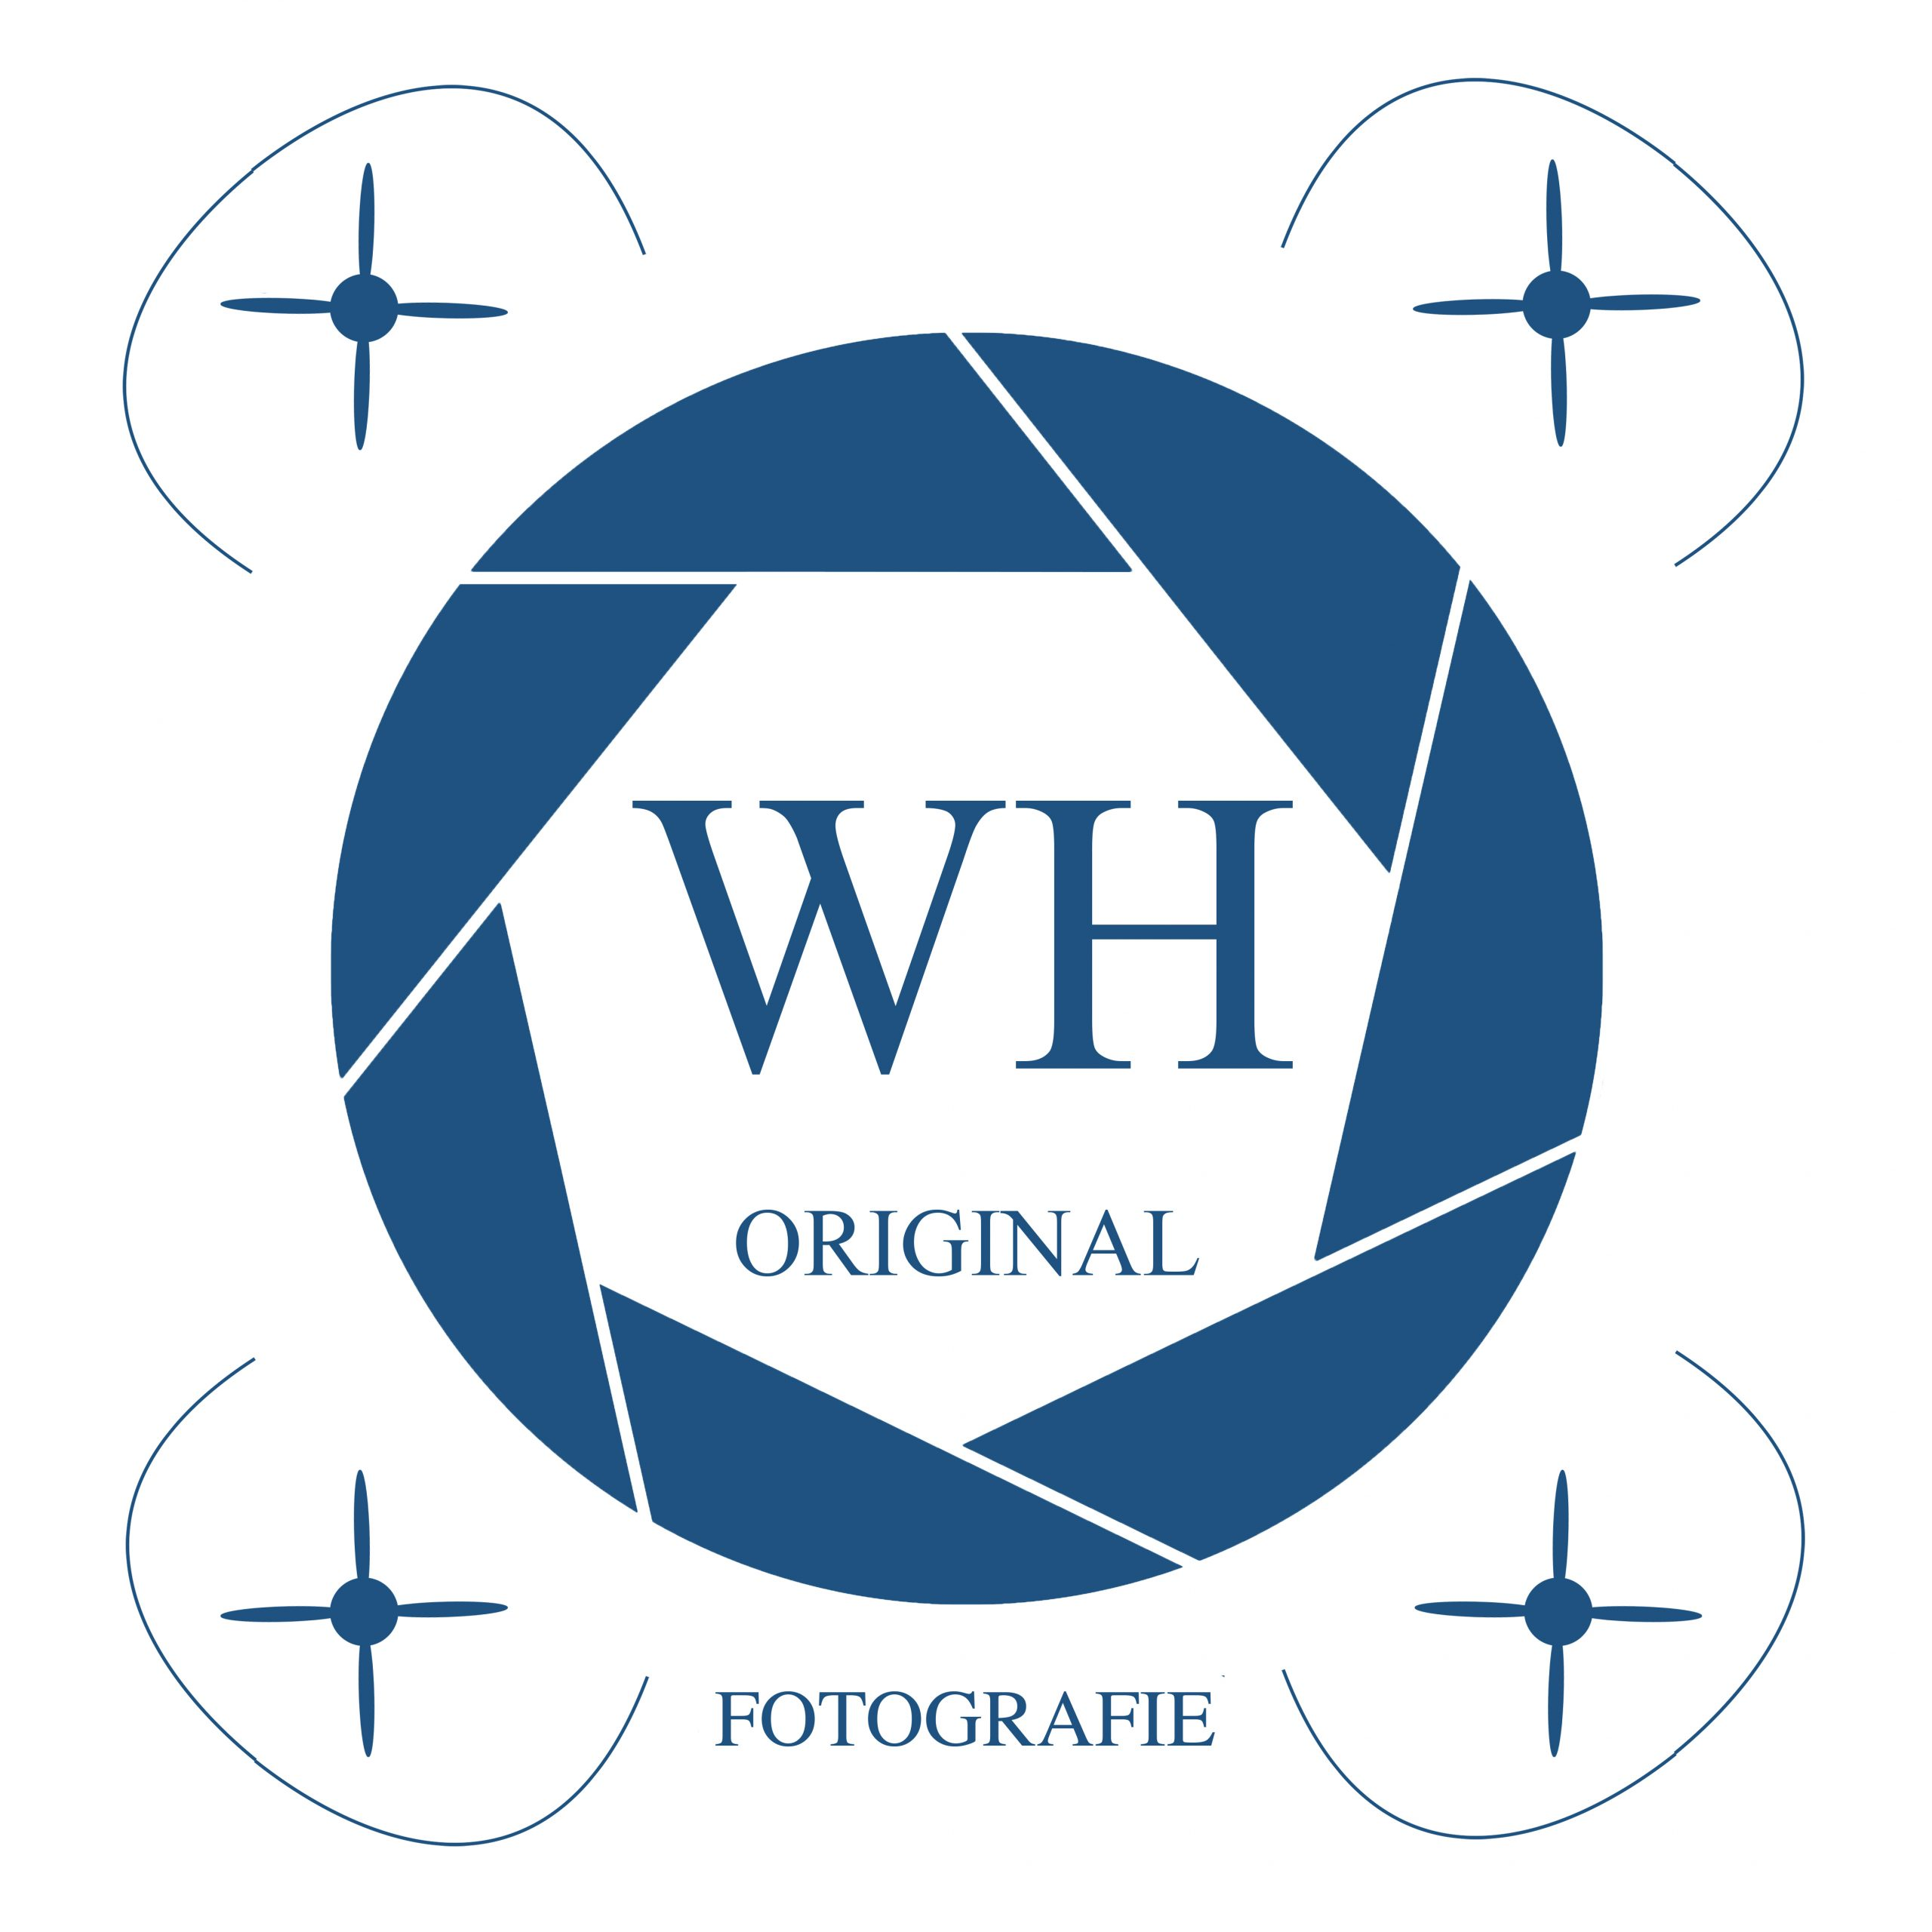 WN Original logo